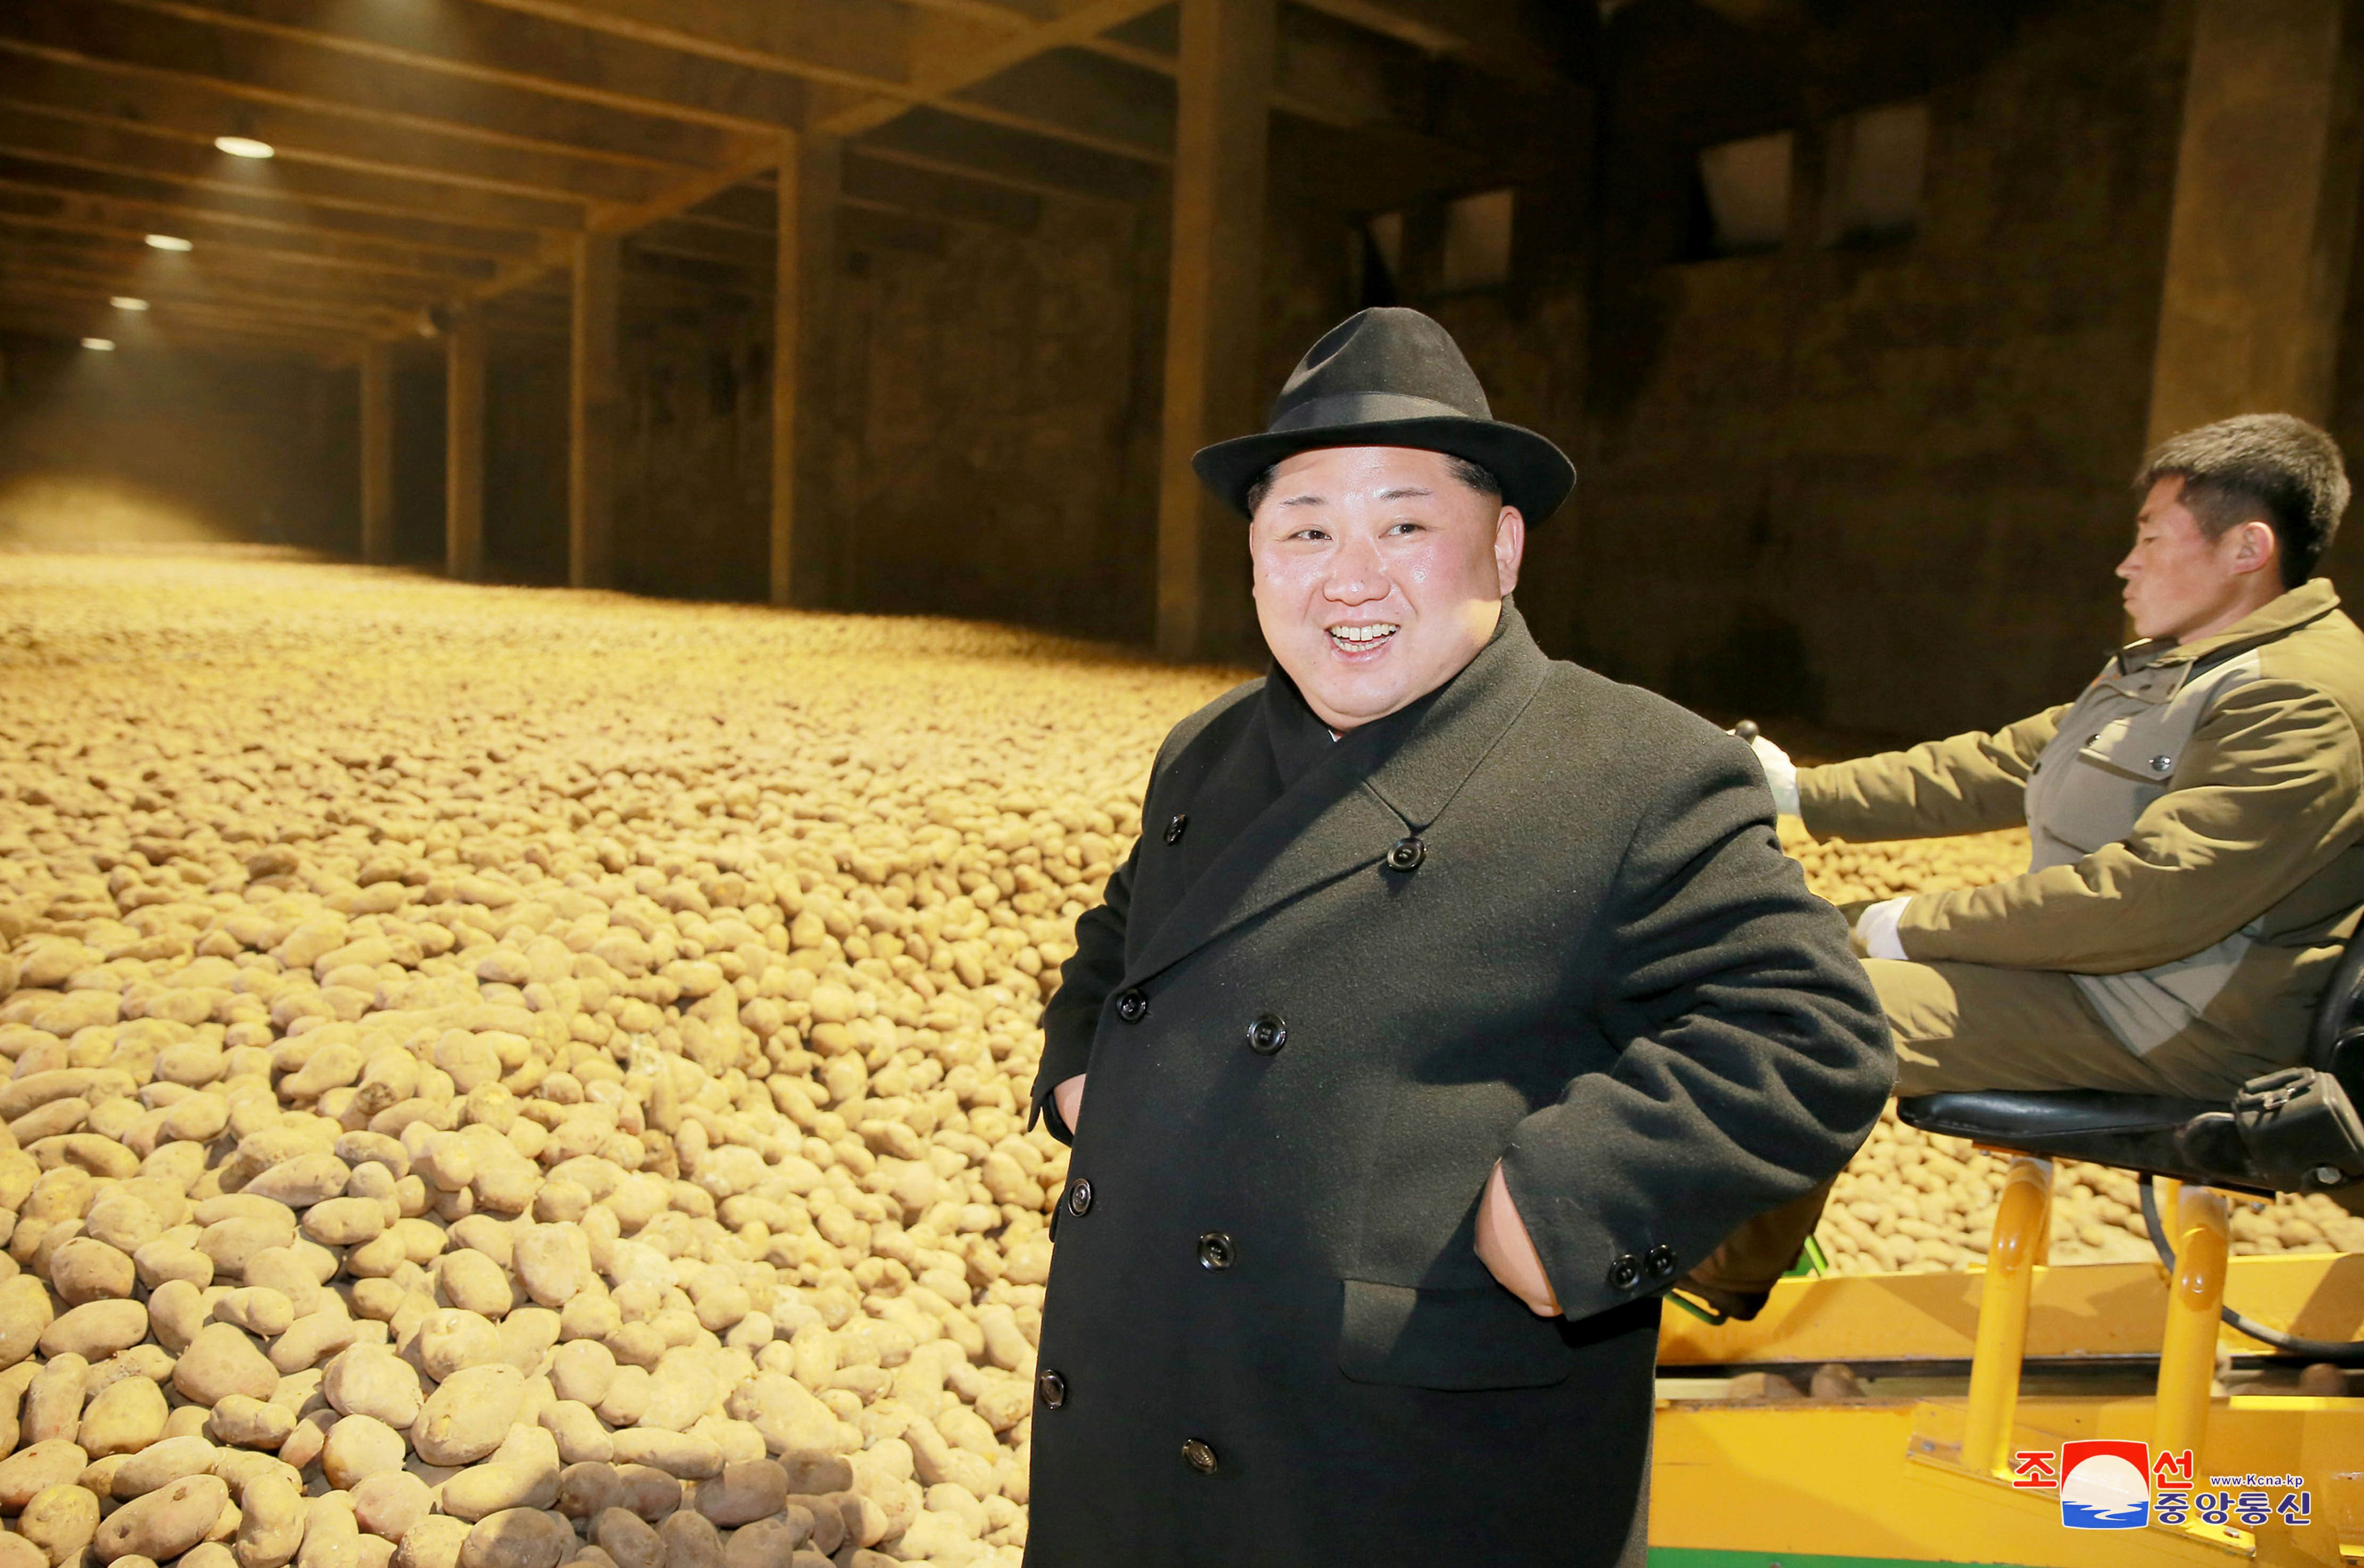 North Korea's leader Kim Jong Un is seen during the inspection of a potato flour factory in this undated photo released by North Korea's Korean Central News Agency (KCNA) in Pyongyang December 6, 2017. KCNA/via REUTERS  ATTENTION EDITORS - THIS PICTURE WAS PROVIDED BY A THIRD PARTY. REUTERS IS UNABLE TO INDEPENDENTLY VERIFY THE AUTHENTICITY, CONTENT, LOCATION OR DATE OF THIS IMAGE. NO THIRD PARTY SALES. SOUTH KOREA OUT.